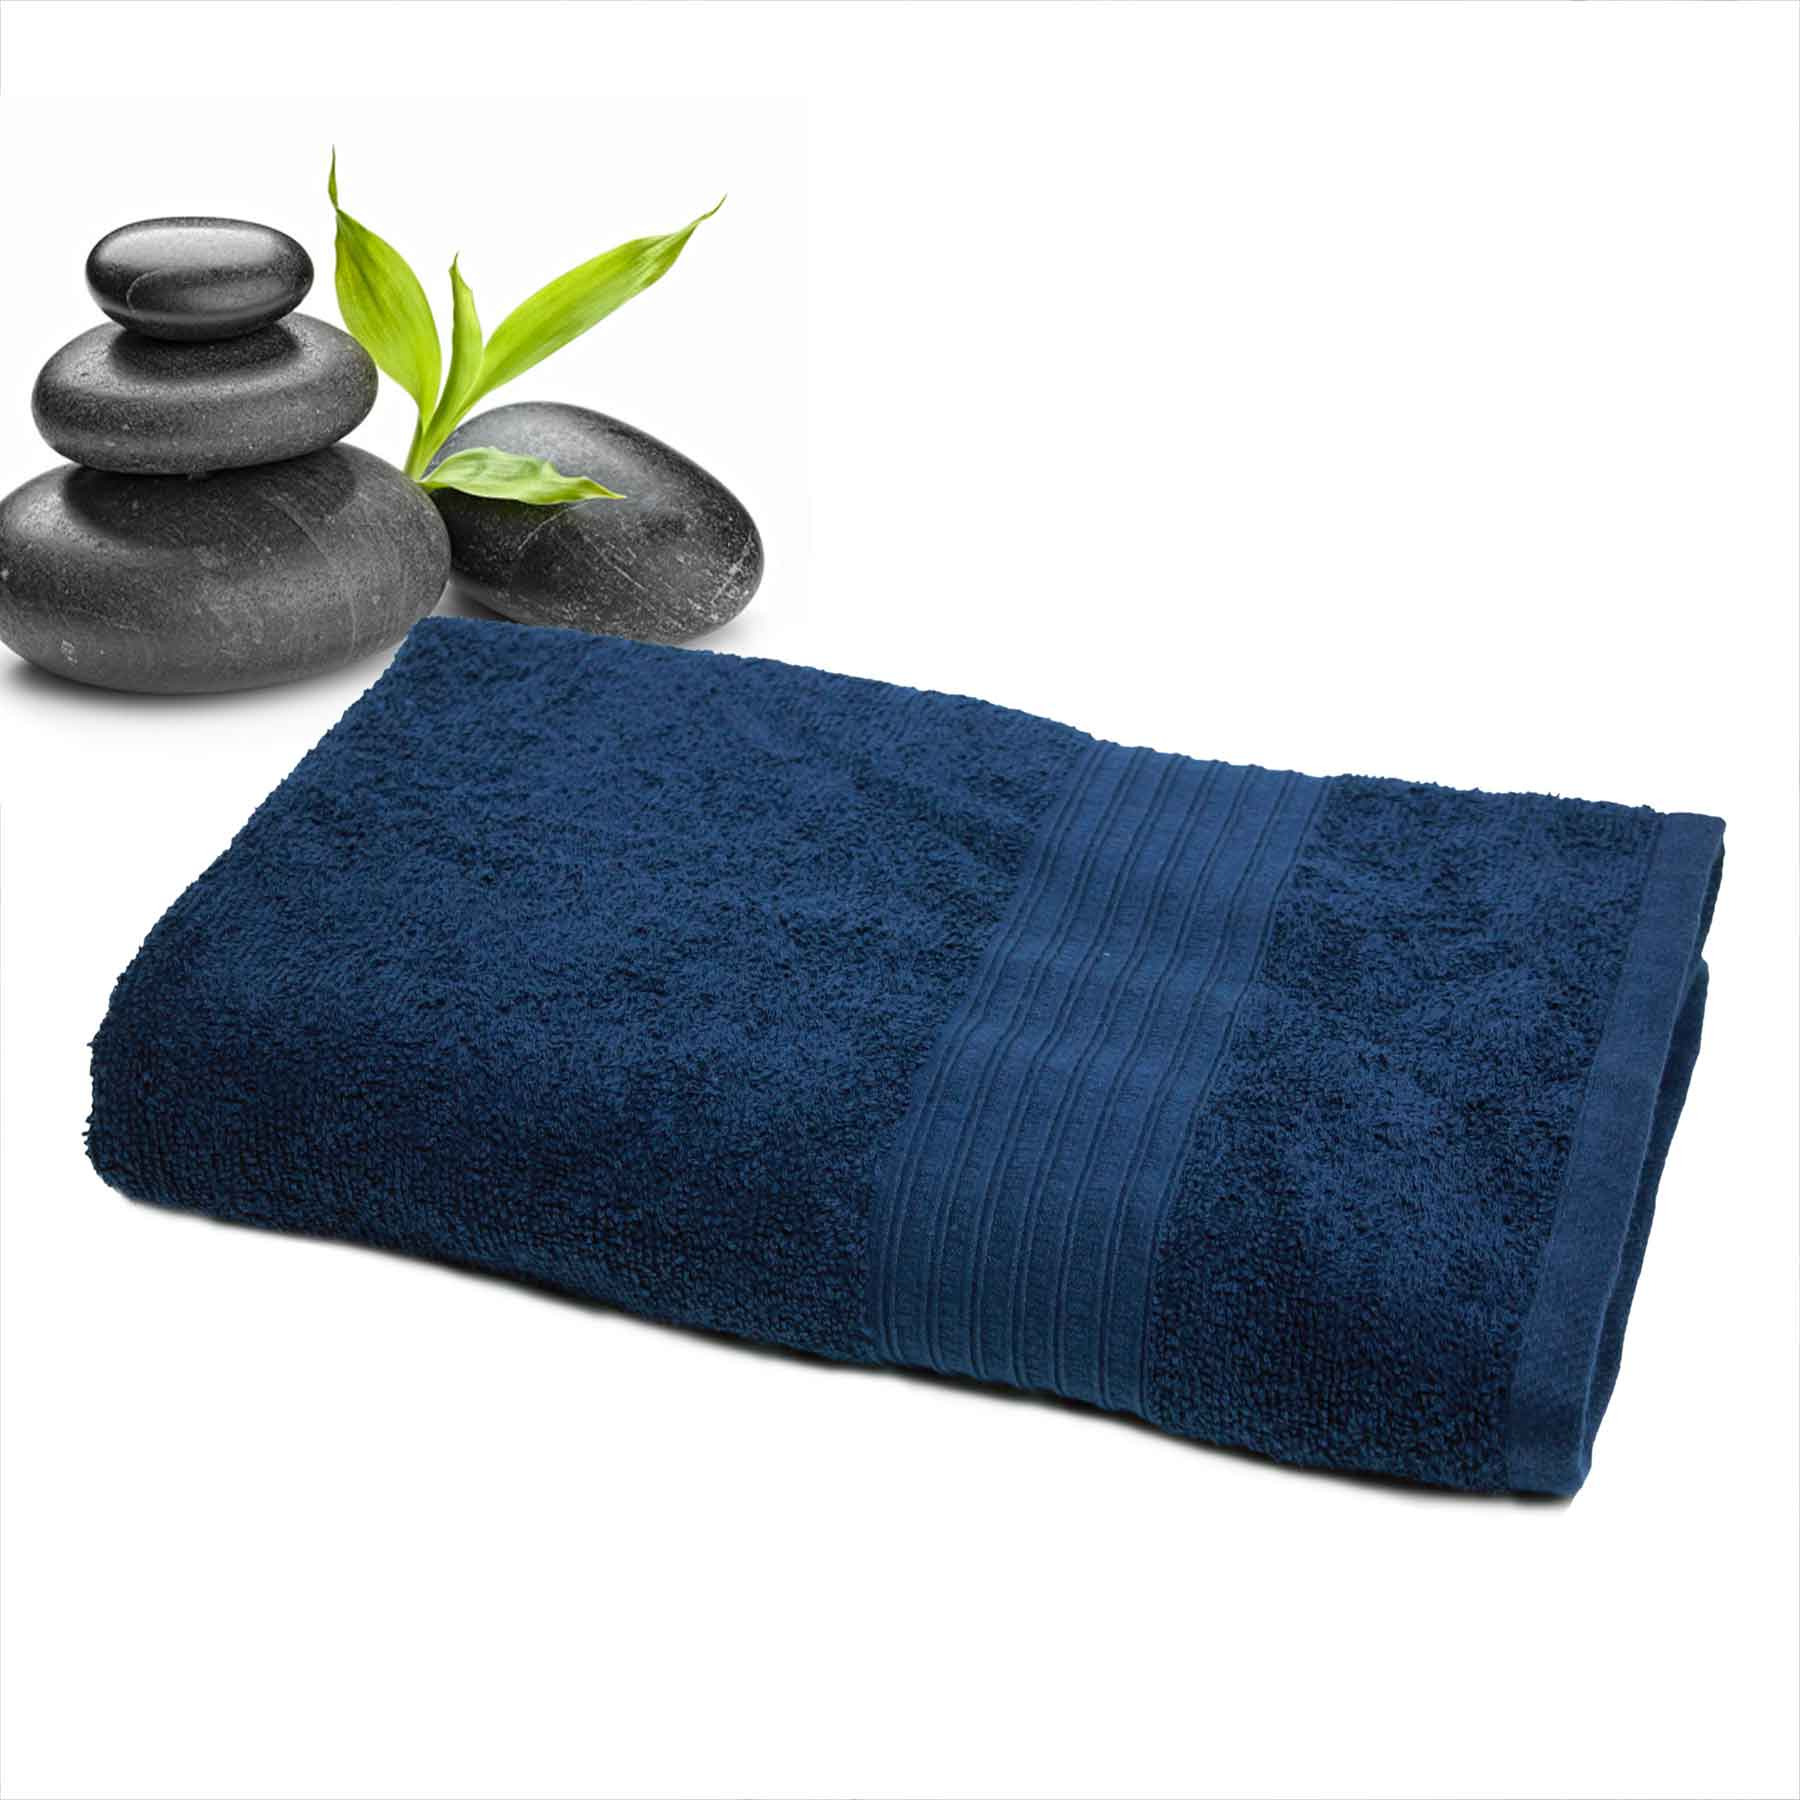 DIVINE CASA Single Cotton Bath Towel Navy (Ladies)